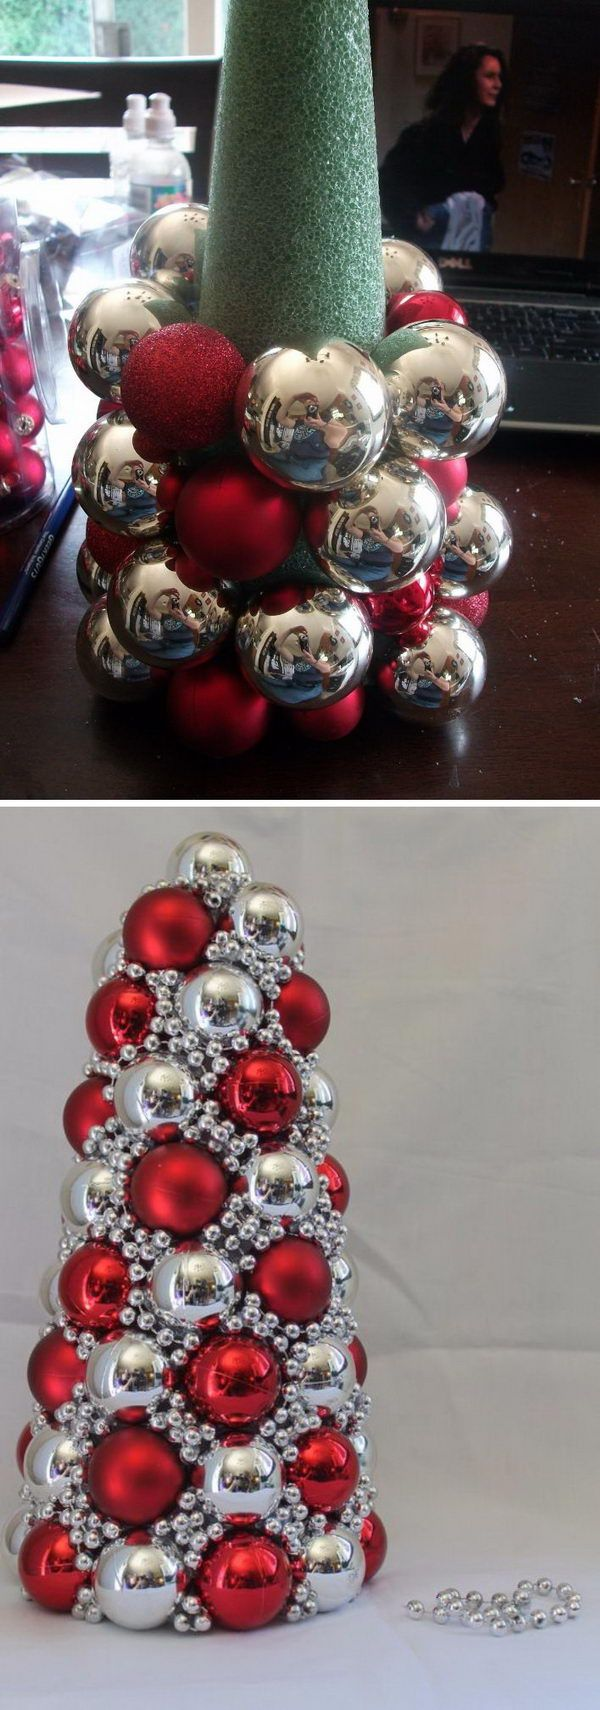 DIY your Christmas gifts this year with